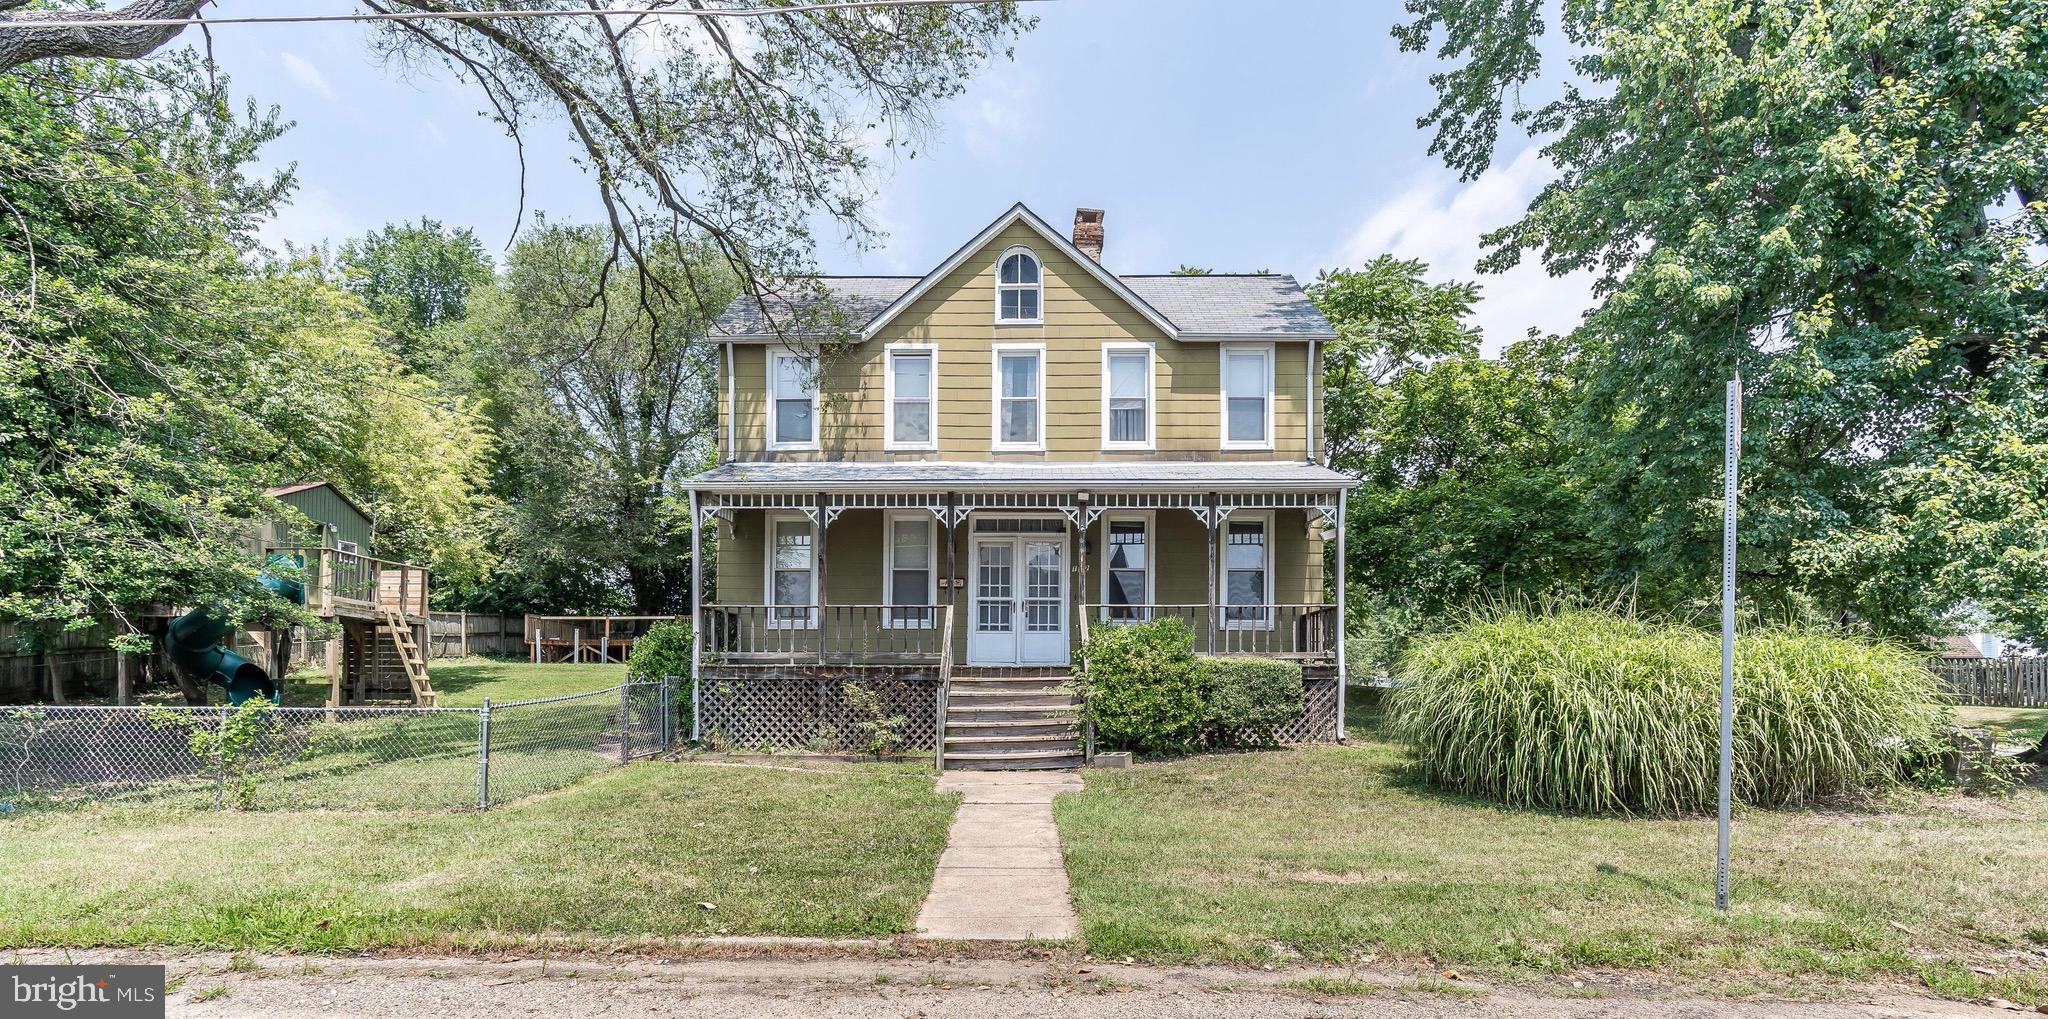 Very Cool 1915 Victorian with 1996 Addition that includes a Huge Kitchen & 2nd Floor Master Bed/Bath.  Addition has CAC.  The Main Level has Bedroom & Full Bath, living Rm, Dining Rm, Kitchen & mud Room.  Three Bedrooms & 2 Baths Upstairs, plus Laundry Room and Study! Extra large lot, Garage, Playhouse & Hot Tub included. House is livable, but needs work.  No FHA or Va contracts